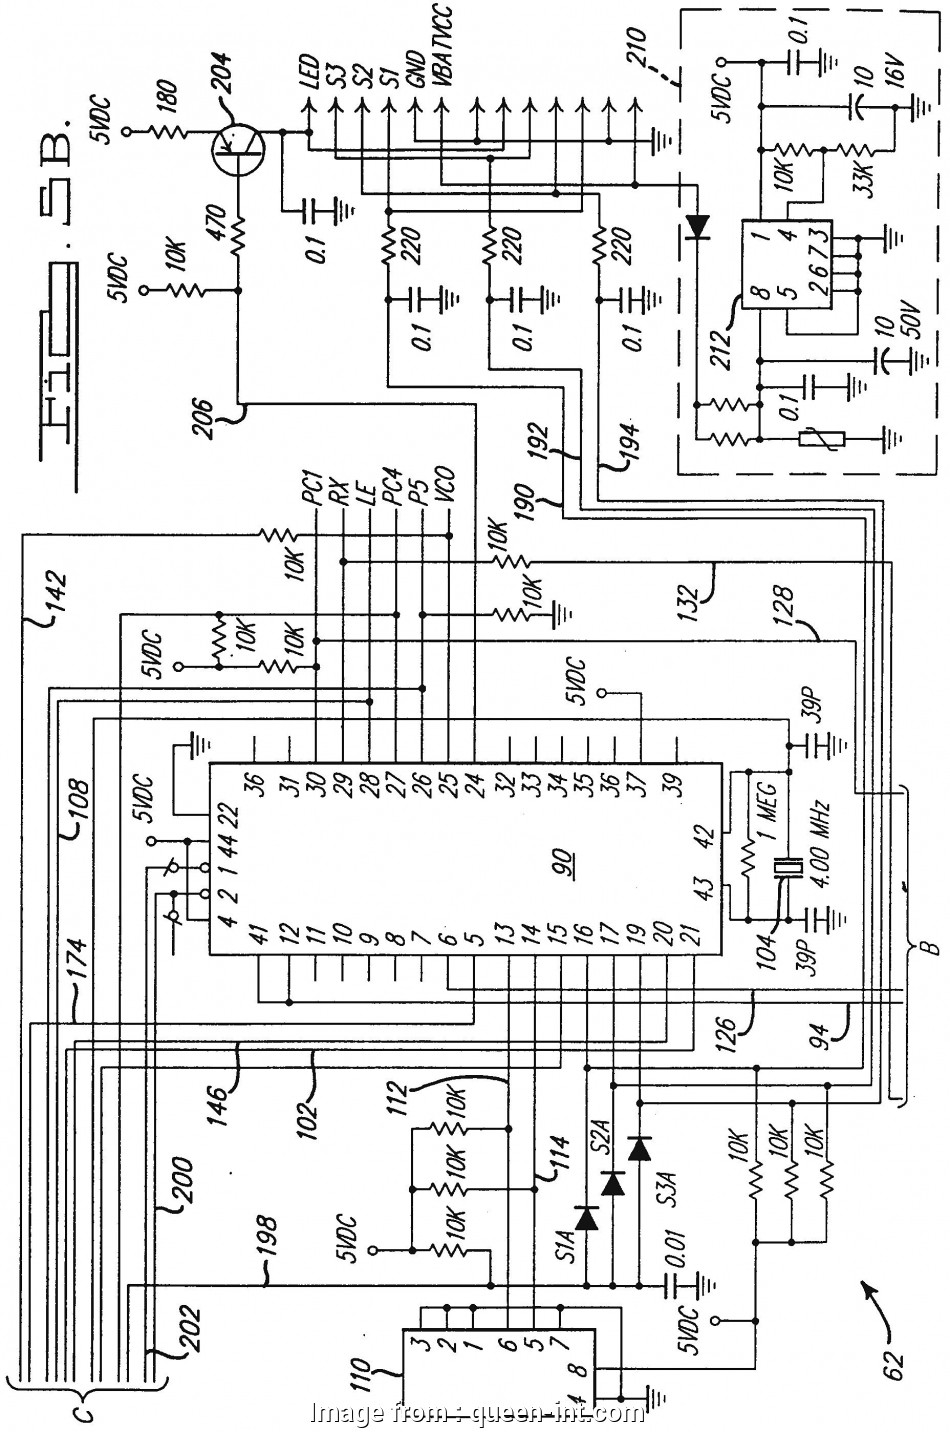 Electrical Wiring Diagram Garage Brilliant Liftmaster